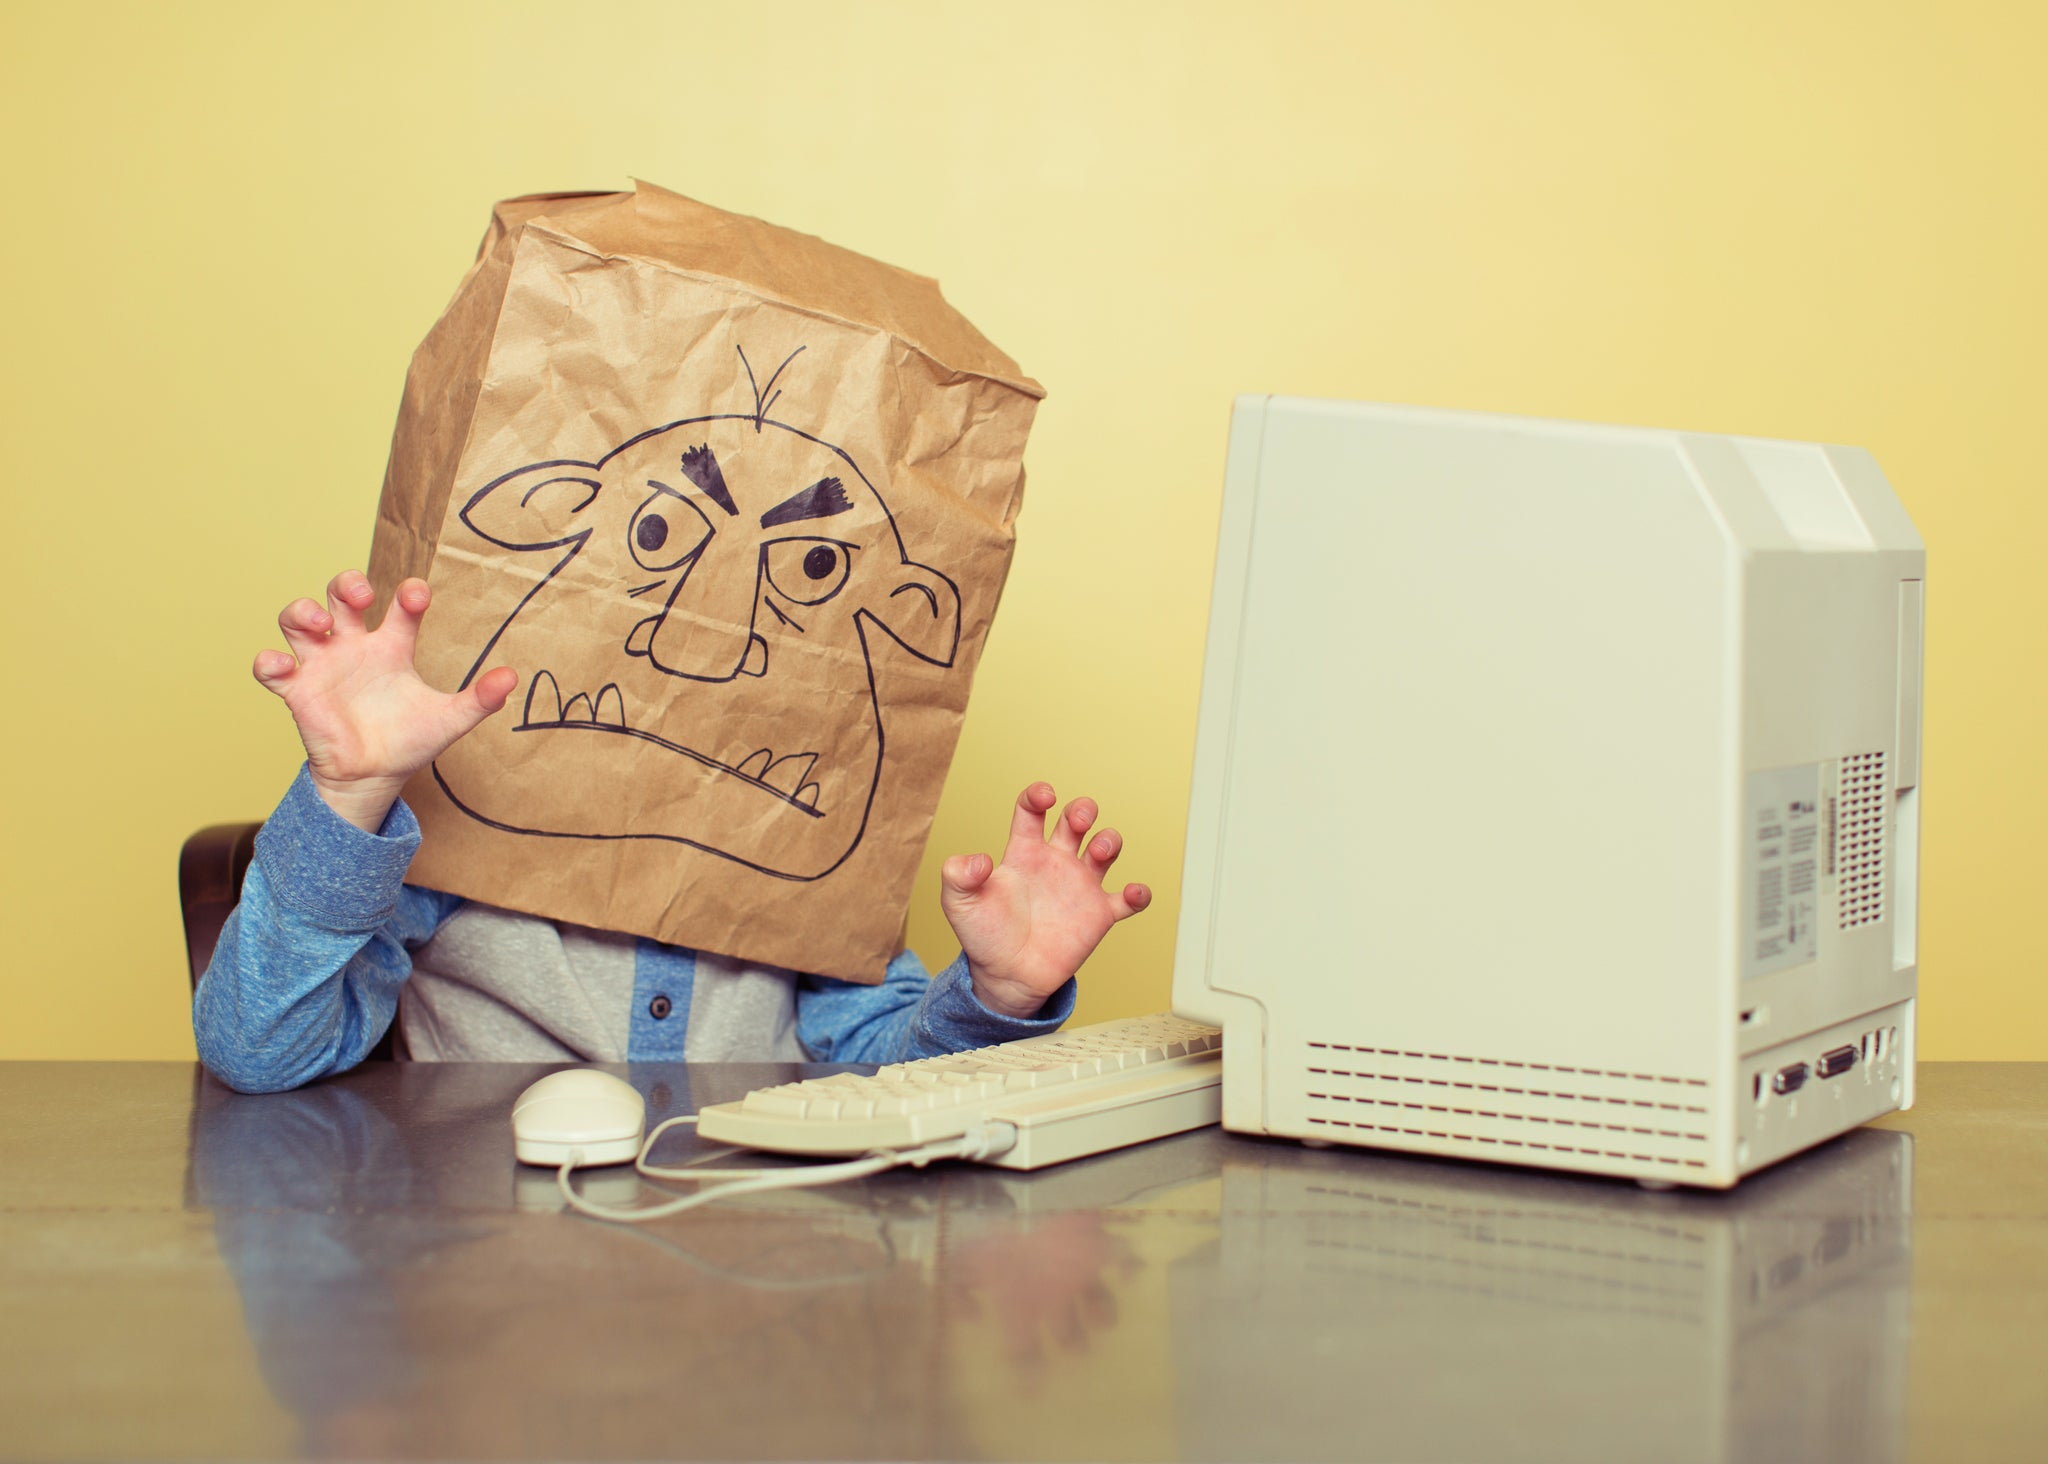 There's an internet troll hiding inside all of us according to science